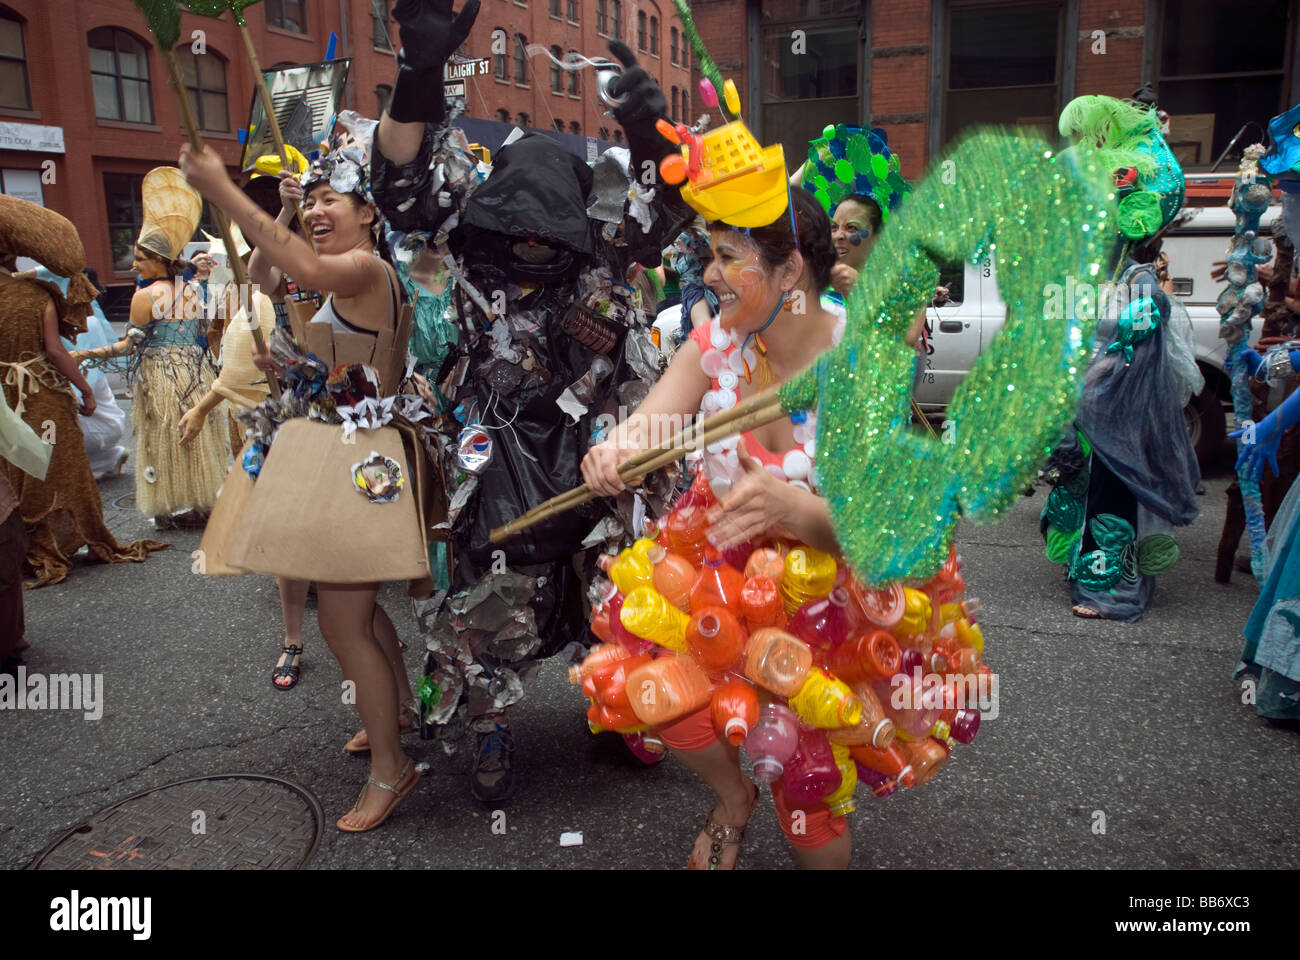 Recyclers battle trash in a piece of street theater during the Earth Celebrations Hudson River Pageant in New York - Stock Image